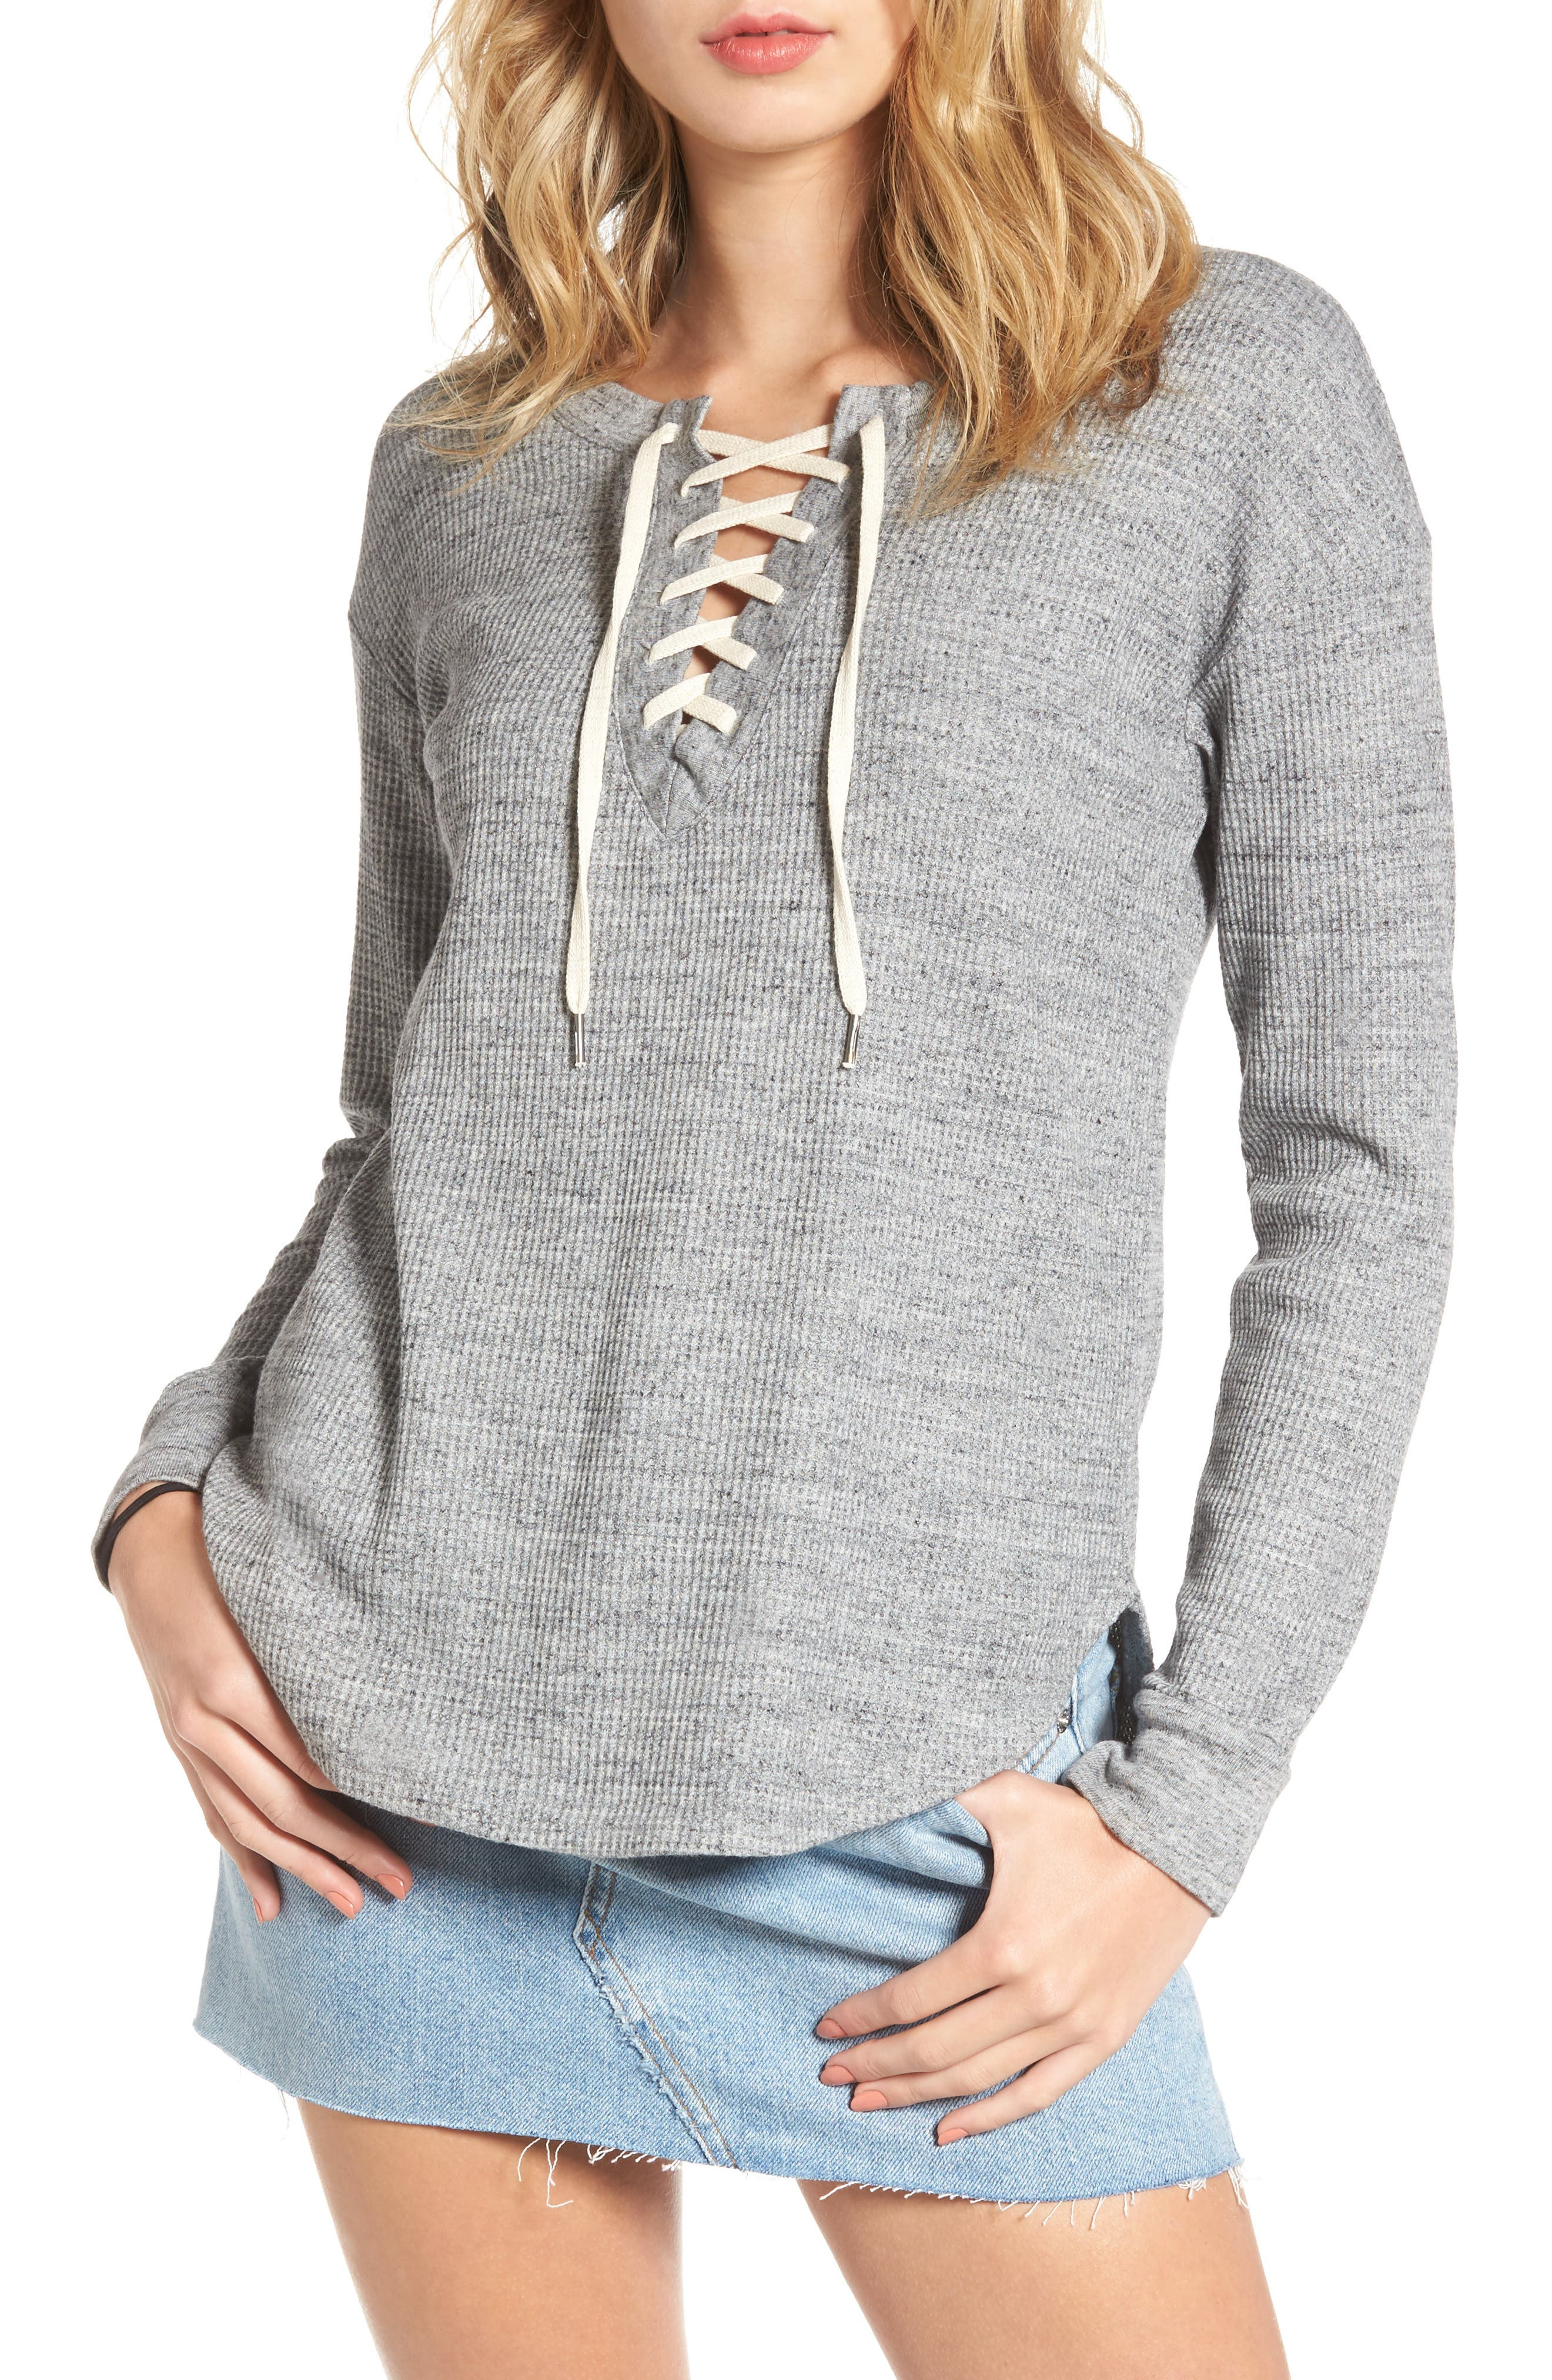 Splendid Lace-Up Thermal Top